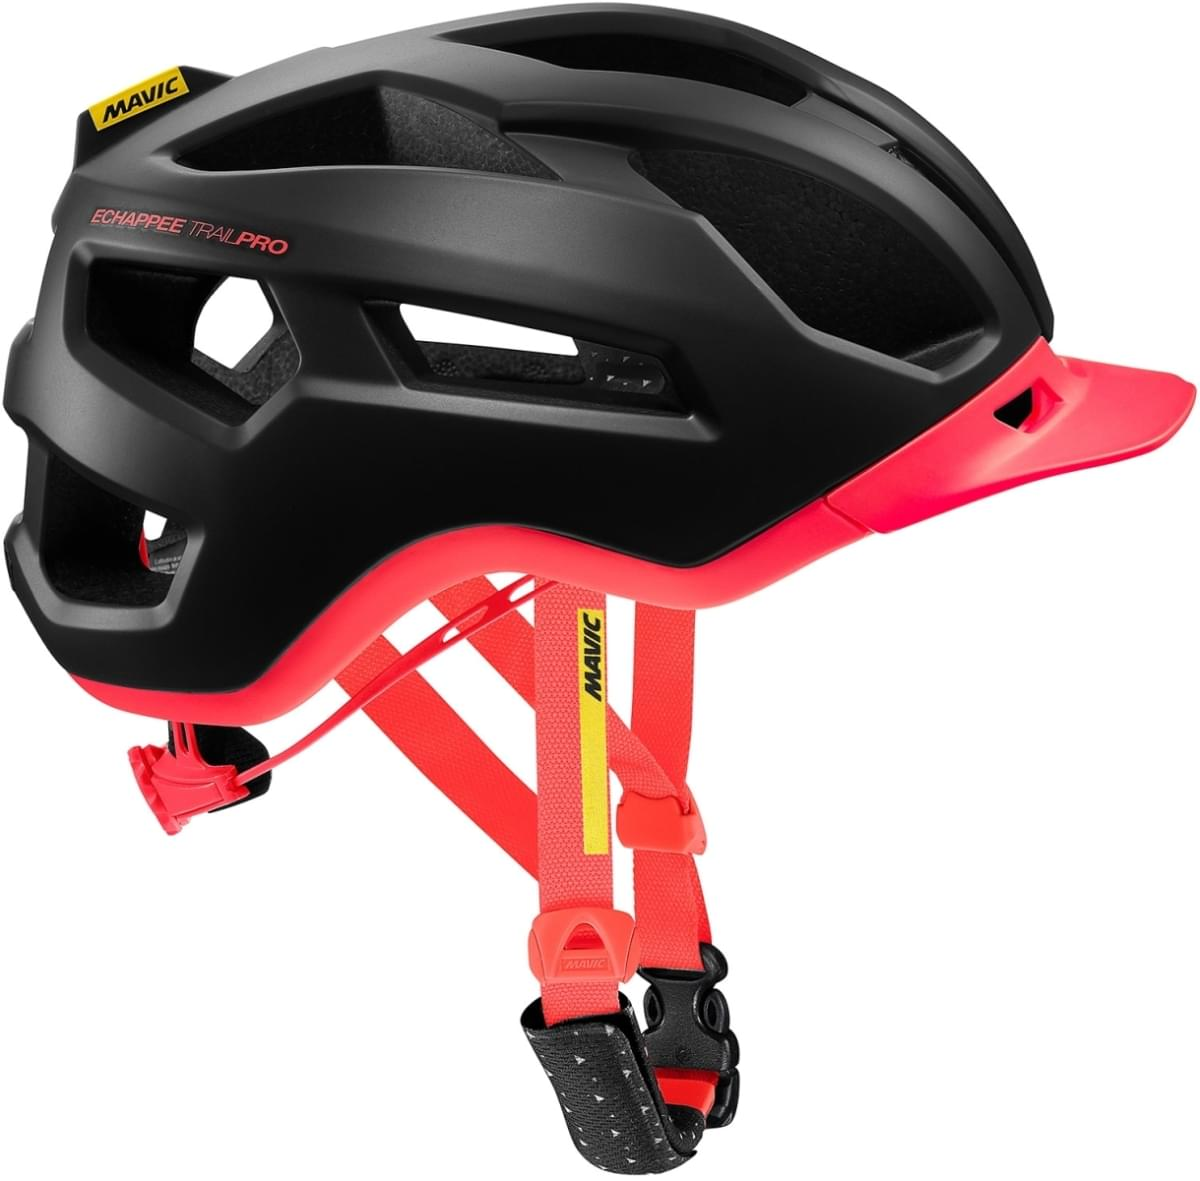 Mavic Echappée Trail Pro Helmet W - pirate black/fiery coral S